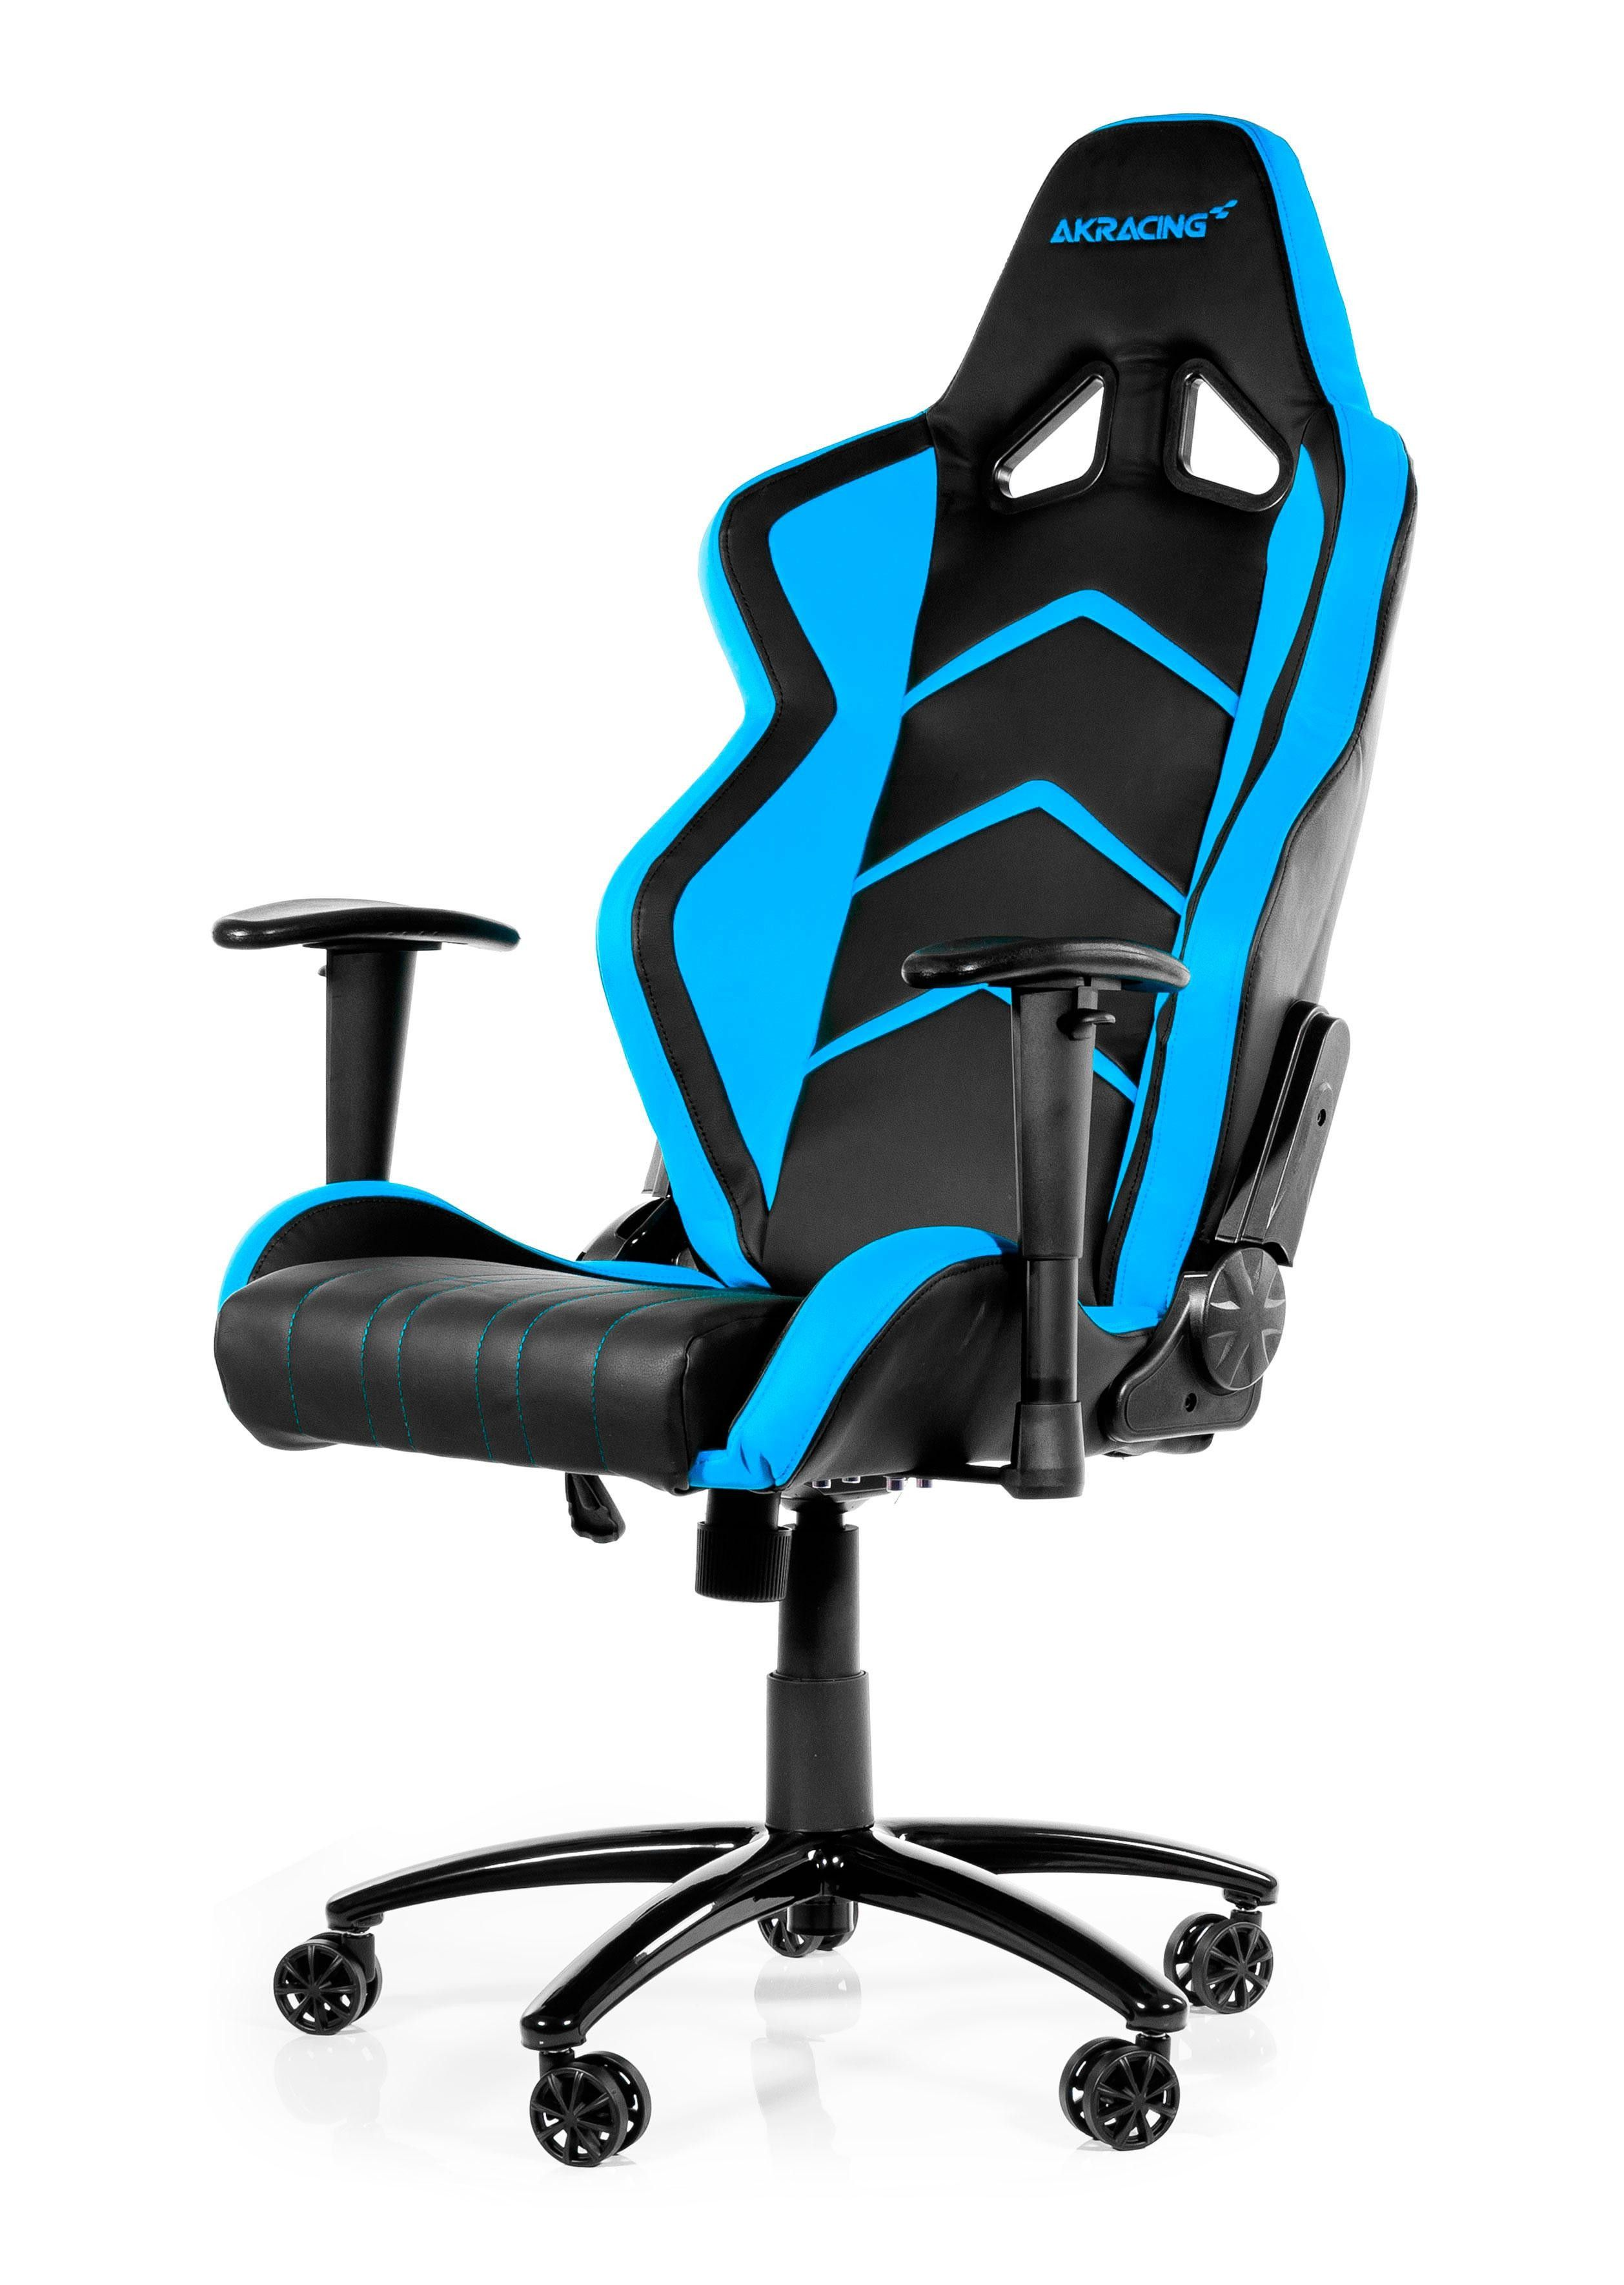 AKRACING Player Gaming Chair Black Blue WRGamers AKRacing  Gamer Stole  Gaming desk chair Office gaming chair og Gaming desk